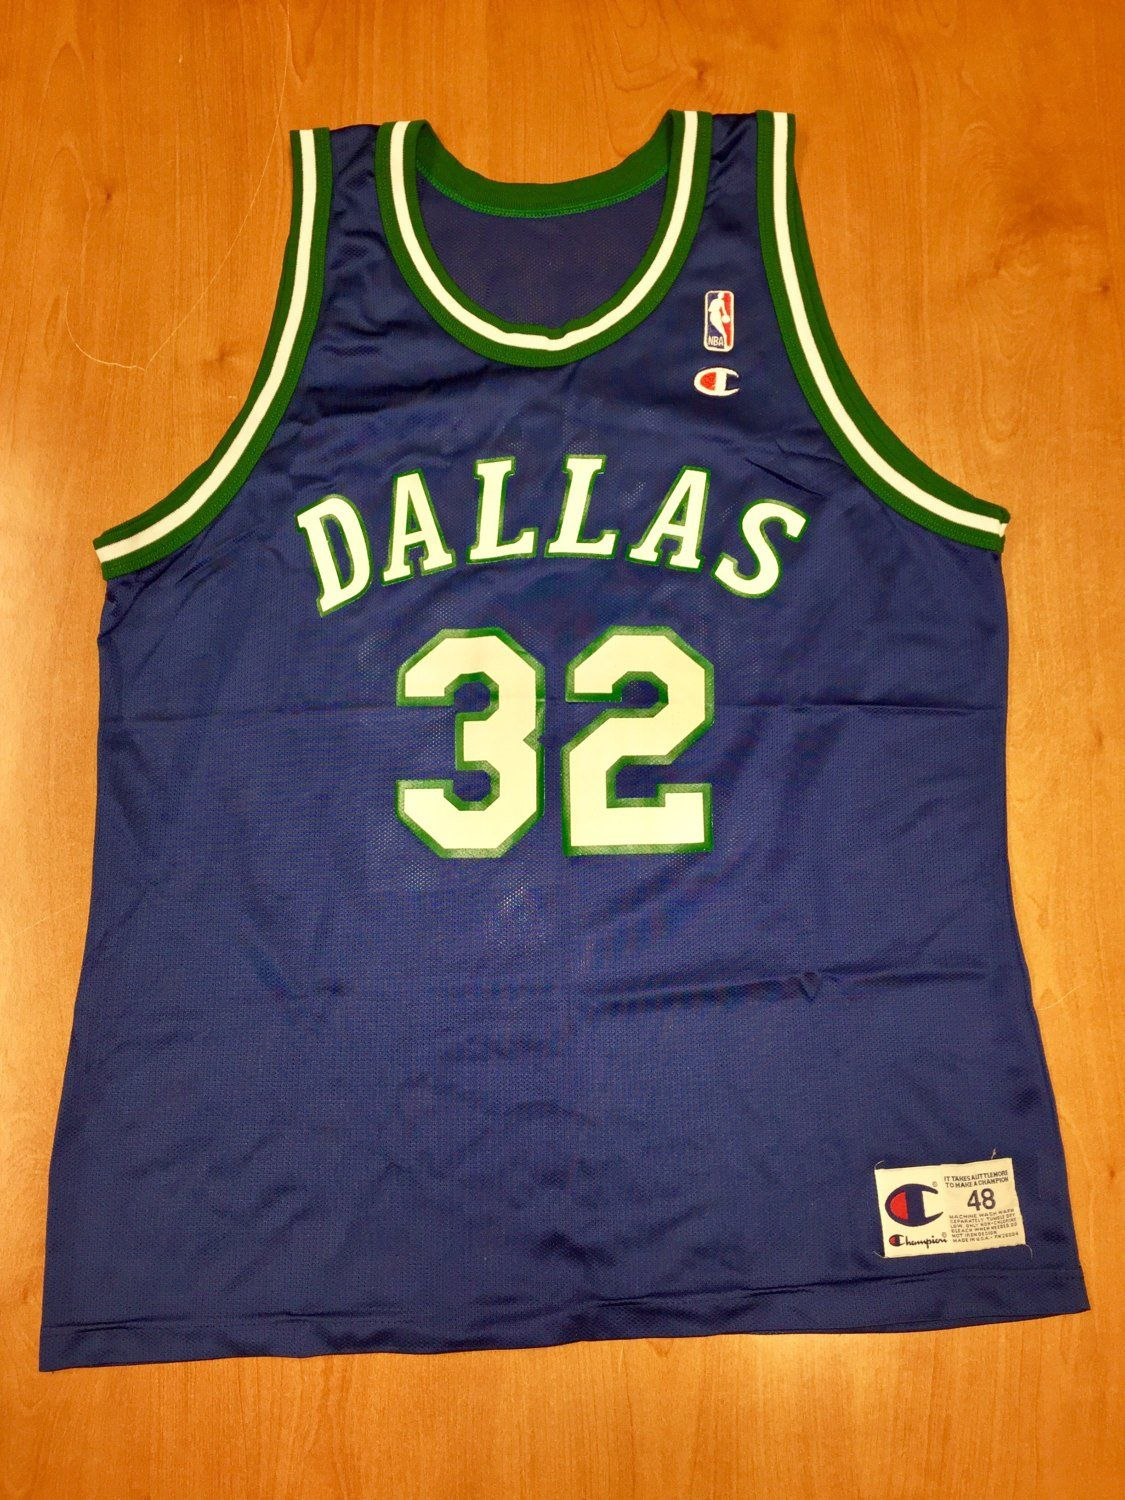 Vintage 1993 - 1997 Jamal Mashburn Dallas Mavericks Champion Jersey Size 48  hat shirt mavs rolando blackman cedric ceballos kentucky uk nba by ... a7237b1f6